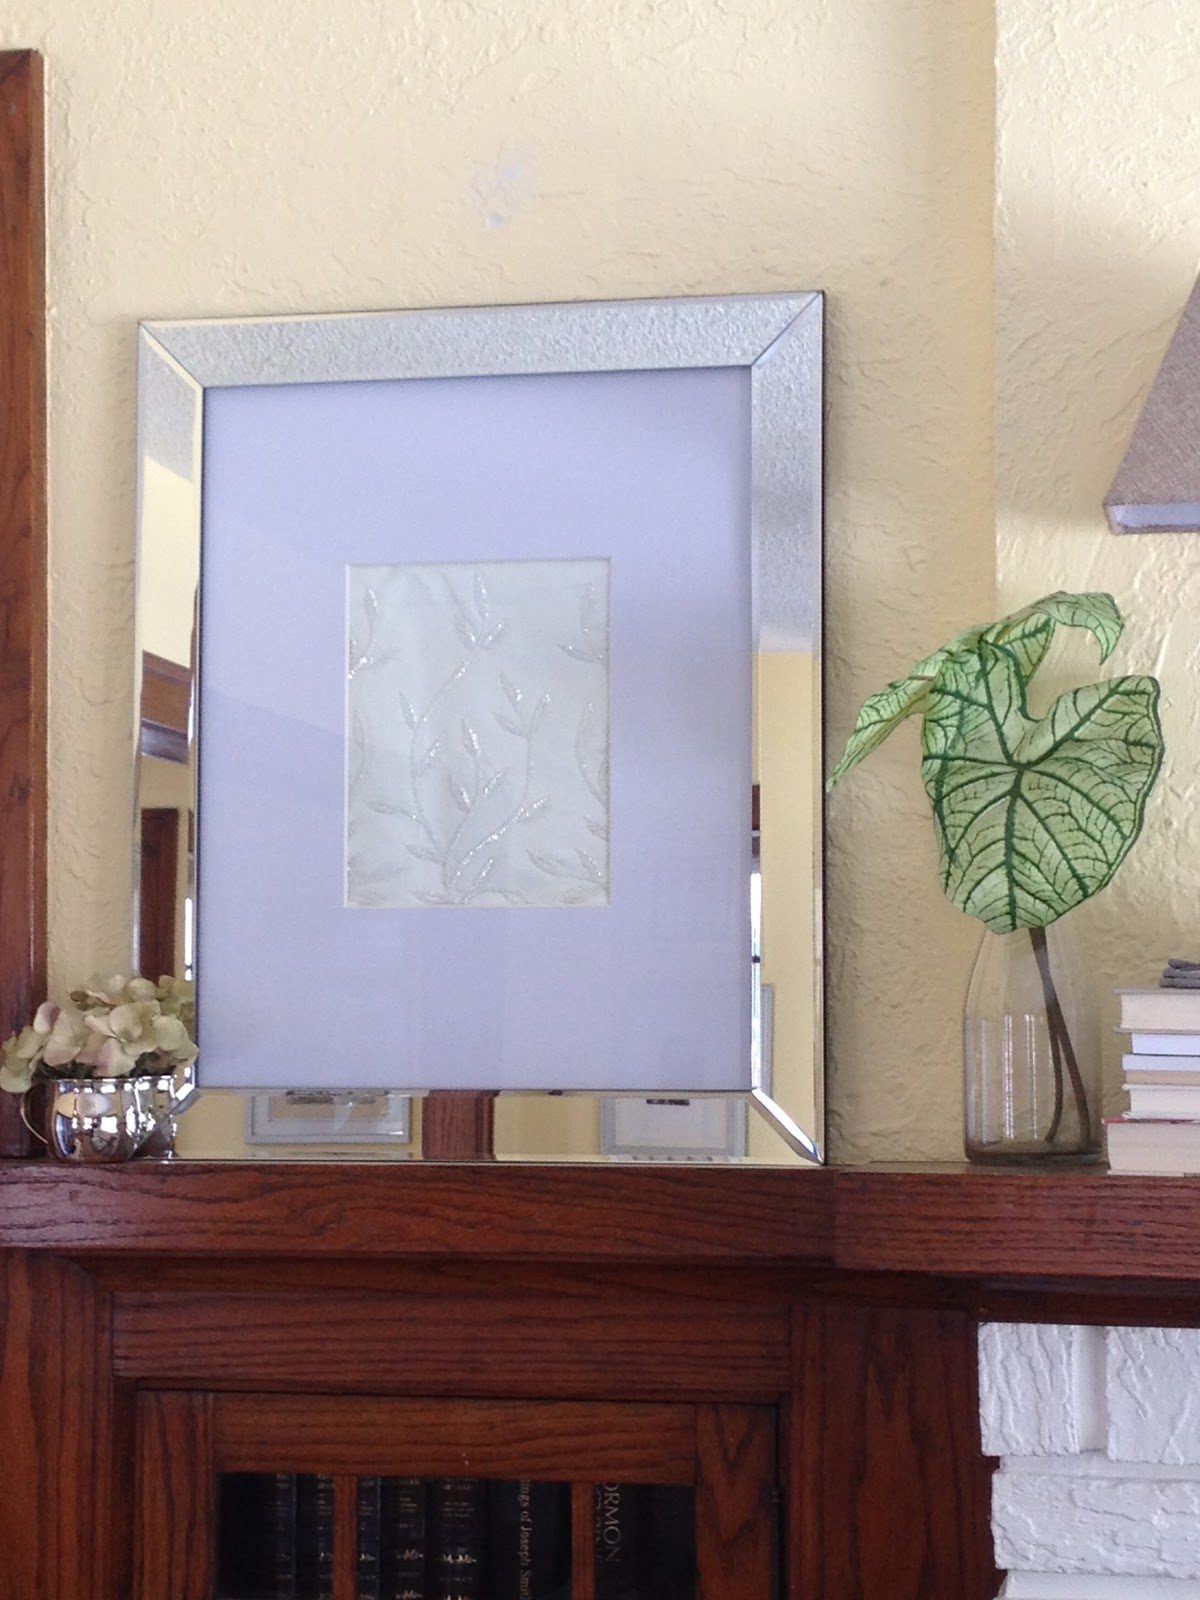 Pictures With Mirrored Frame 6